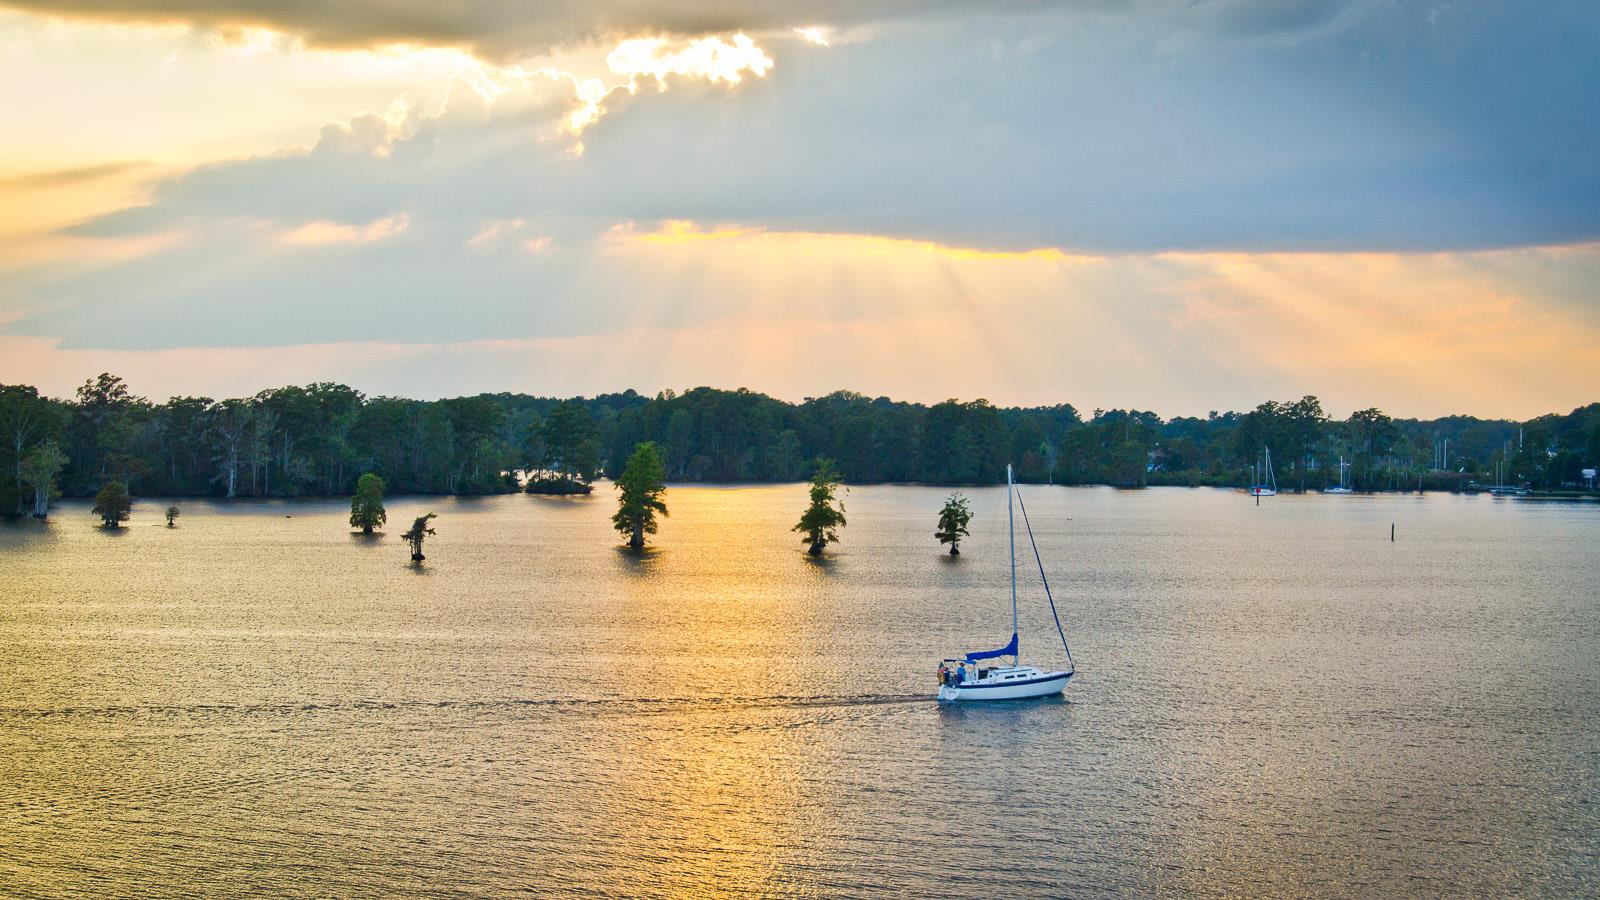 Sailing on Edenton Bay